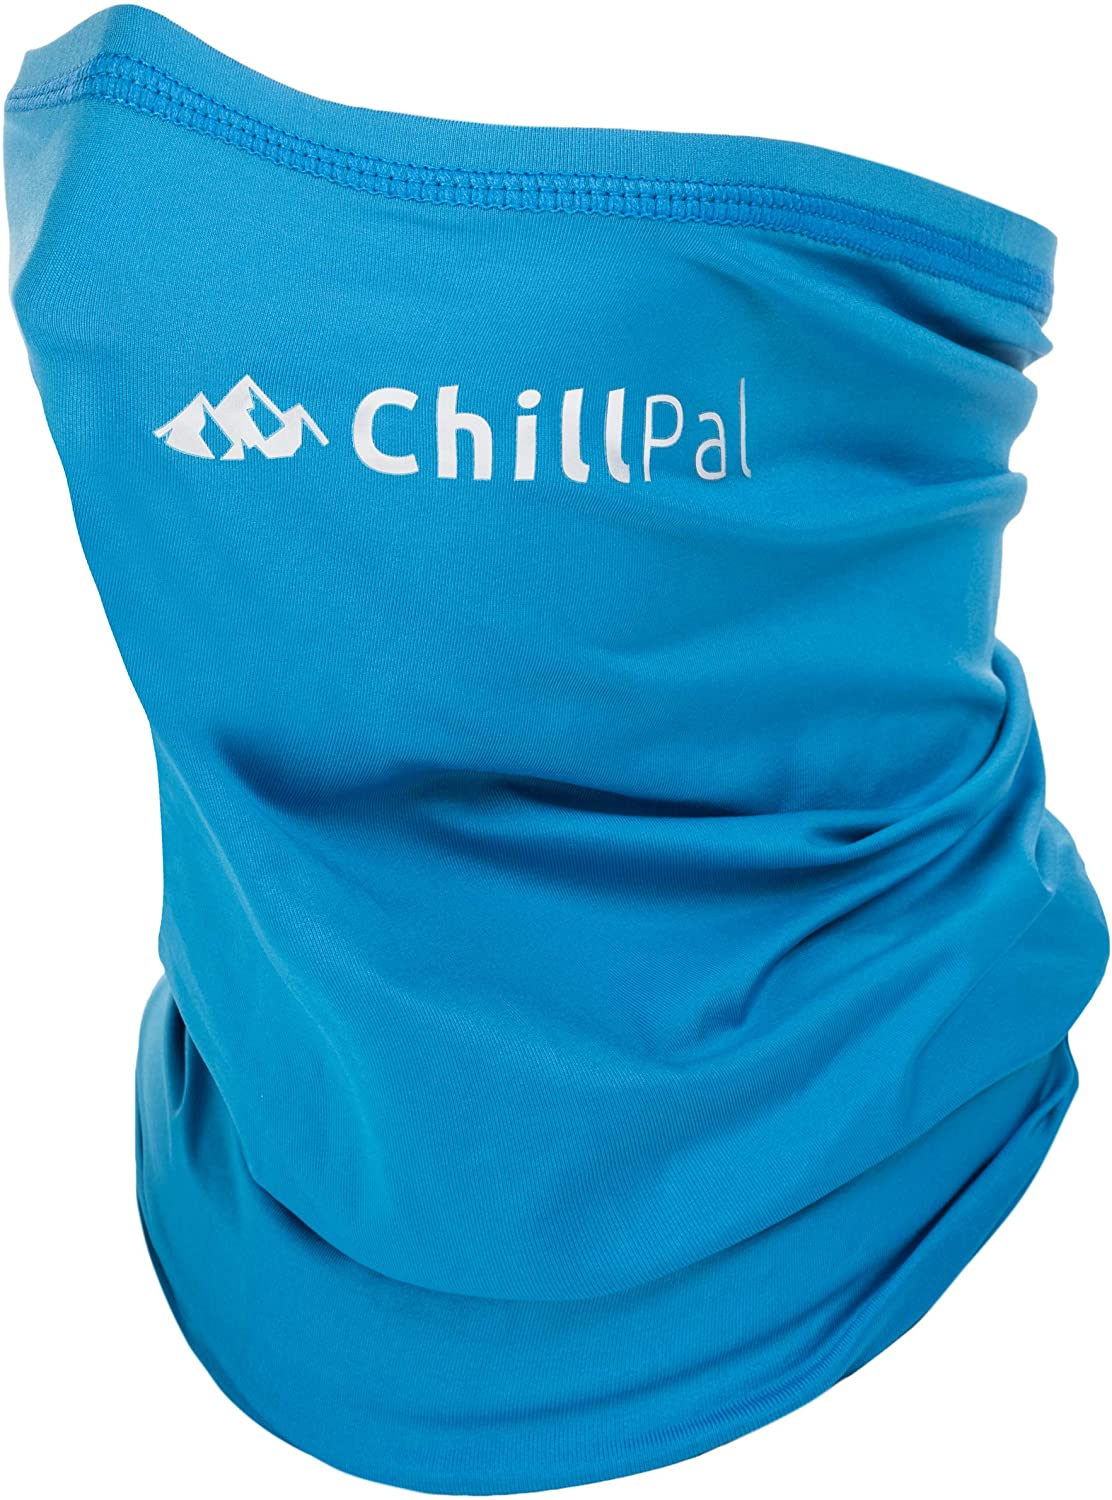 Chill Pal 12 in 1 Multi Style Cooling Towel Neck Gaiter Face Cover (Blue, Full Size): Sports & Outdoors